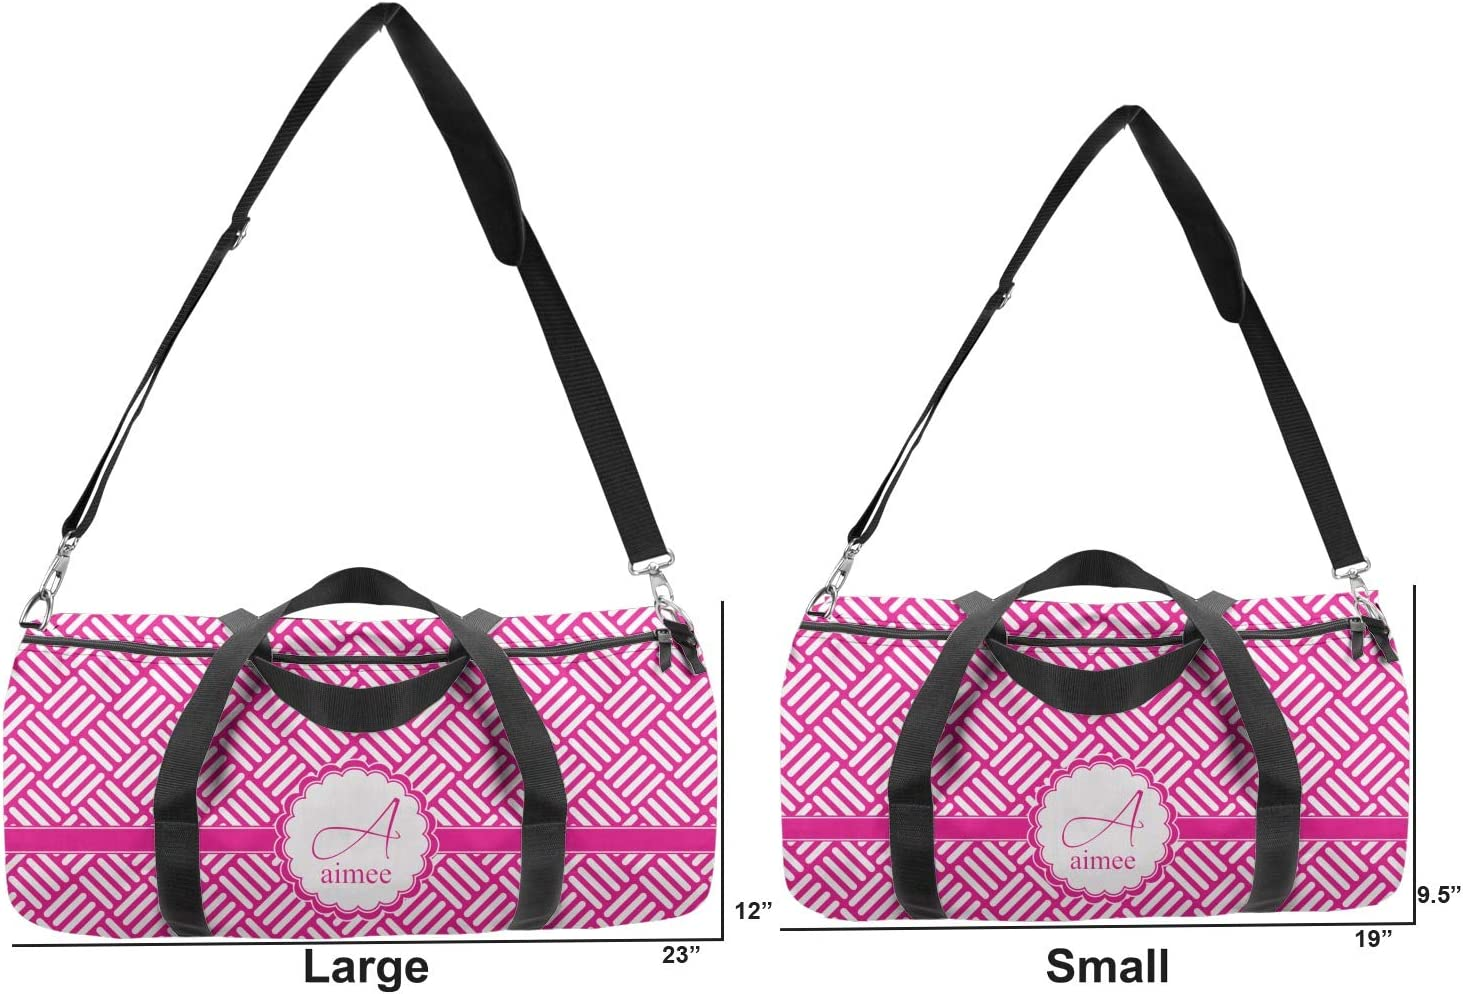 Personalized YouCustomizeIt Square Weave Duffel Bag